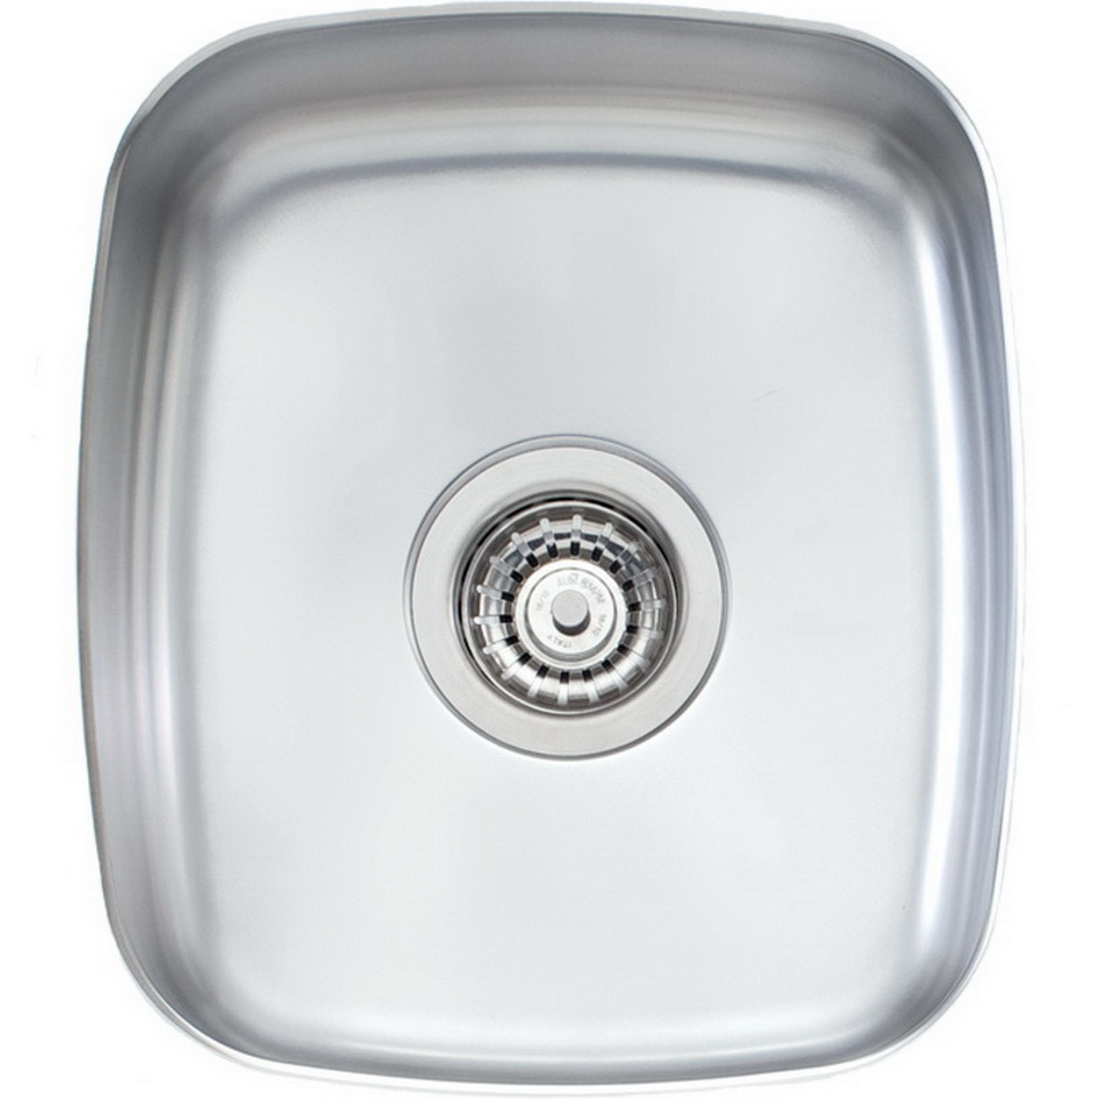 Endeavour Standard Single Sink Bowl Undermount